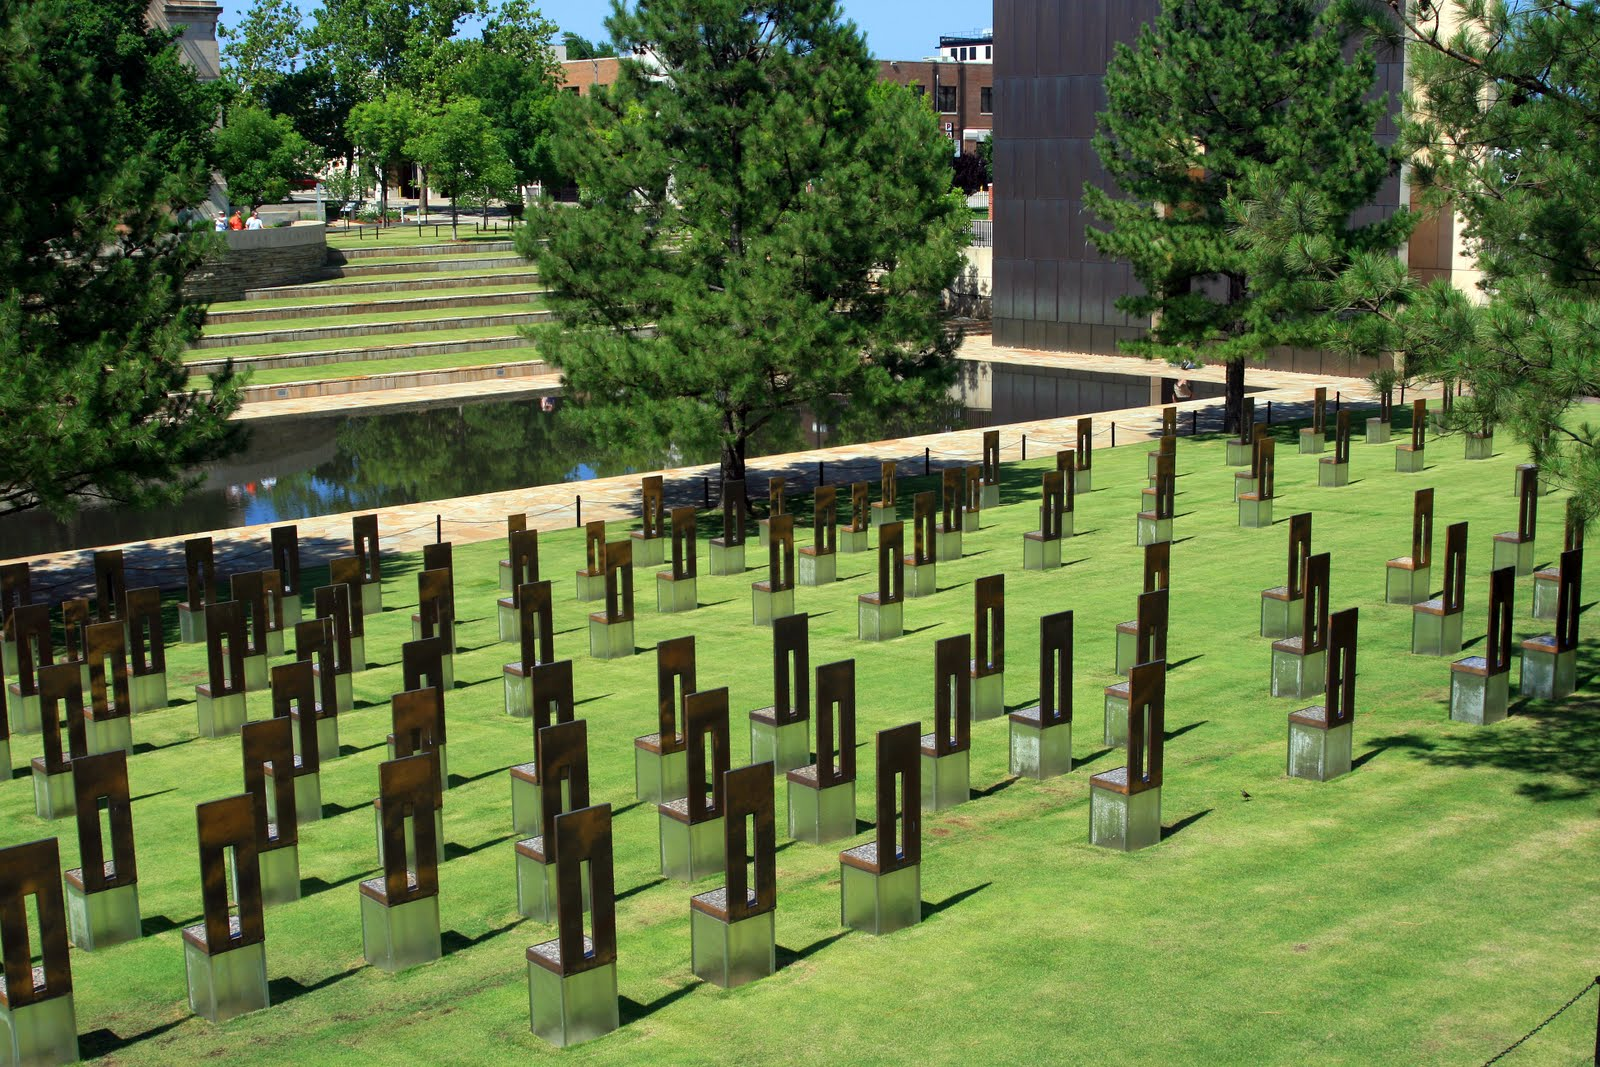 okc national memorial essay contest Okc national memorial essay contest to win the oklahoma city national  memorial and museum student essay contest is open to students in grades five .